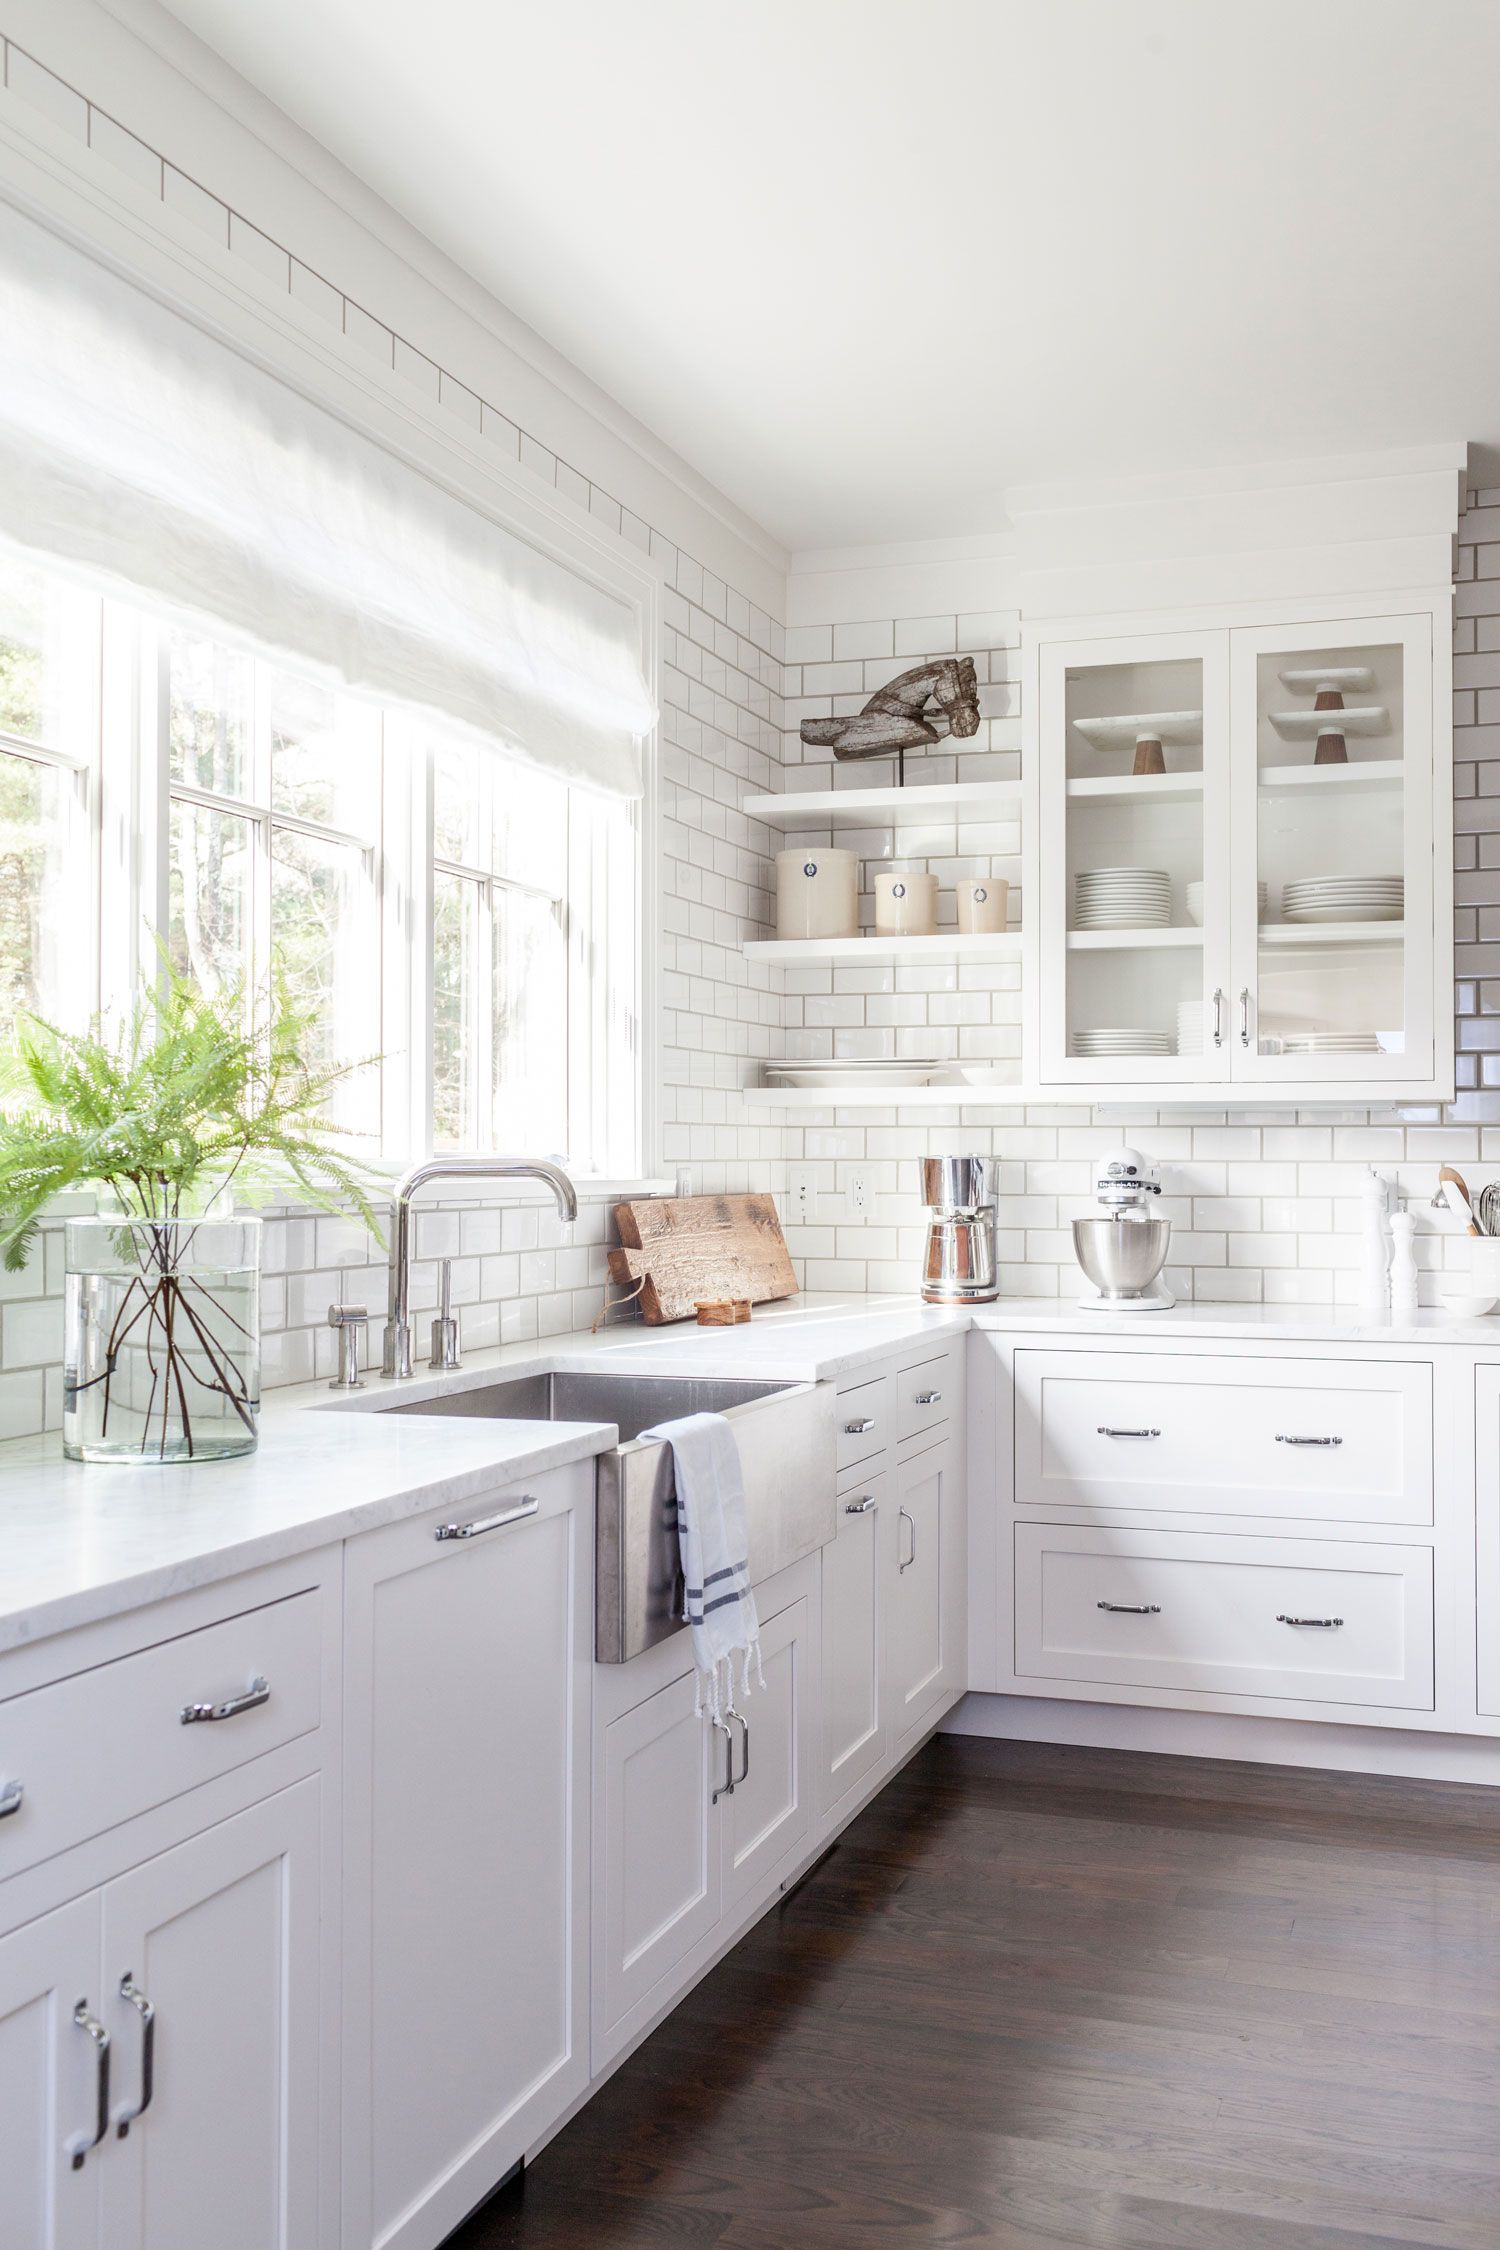 Amazing kitchen design idea with white tile, white cabinets, large on shaker homes, shaker cottage kitchen, shaker transitional kitchen, shaker barn, shaker contemporary kitchen, shaker living room, shaker bedroom, shaker dining room, shaker traditional kitchen,